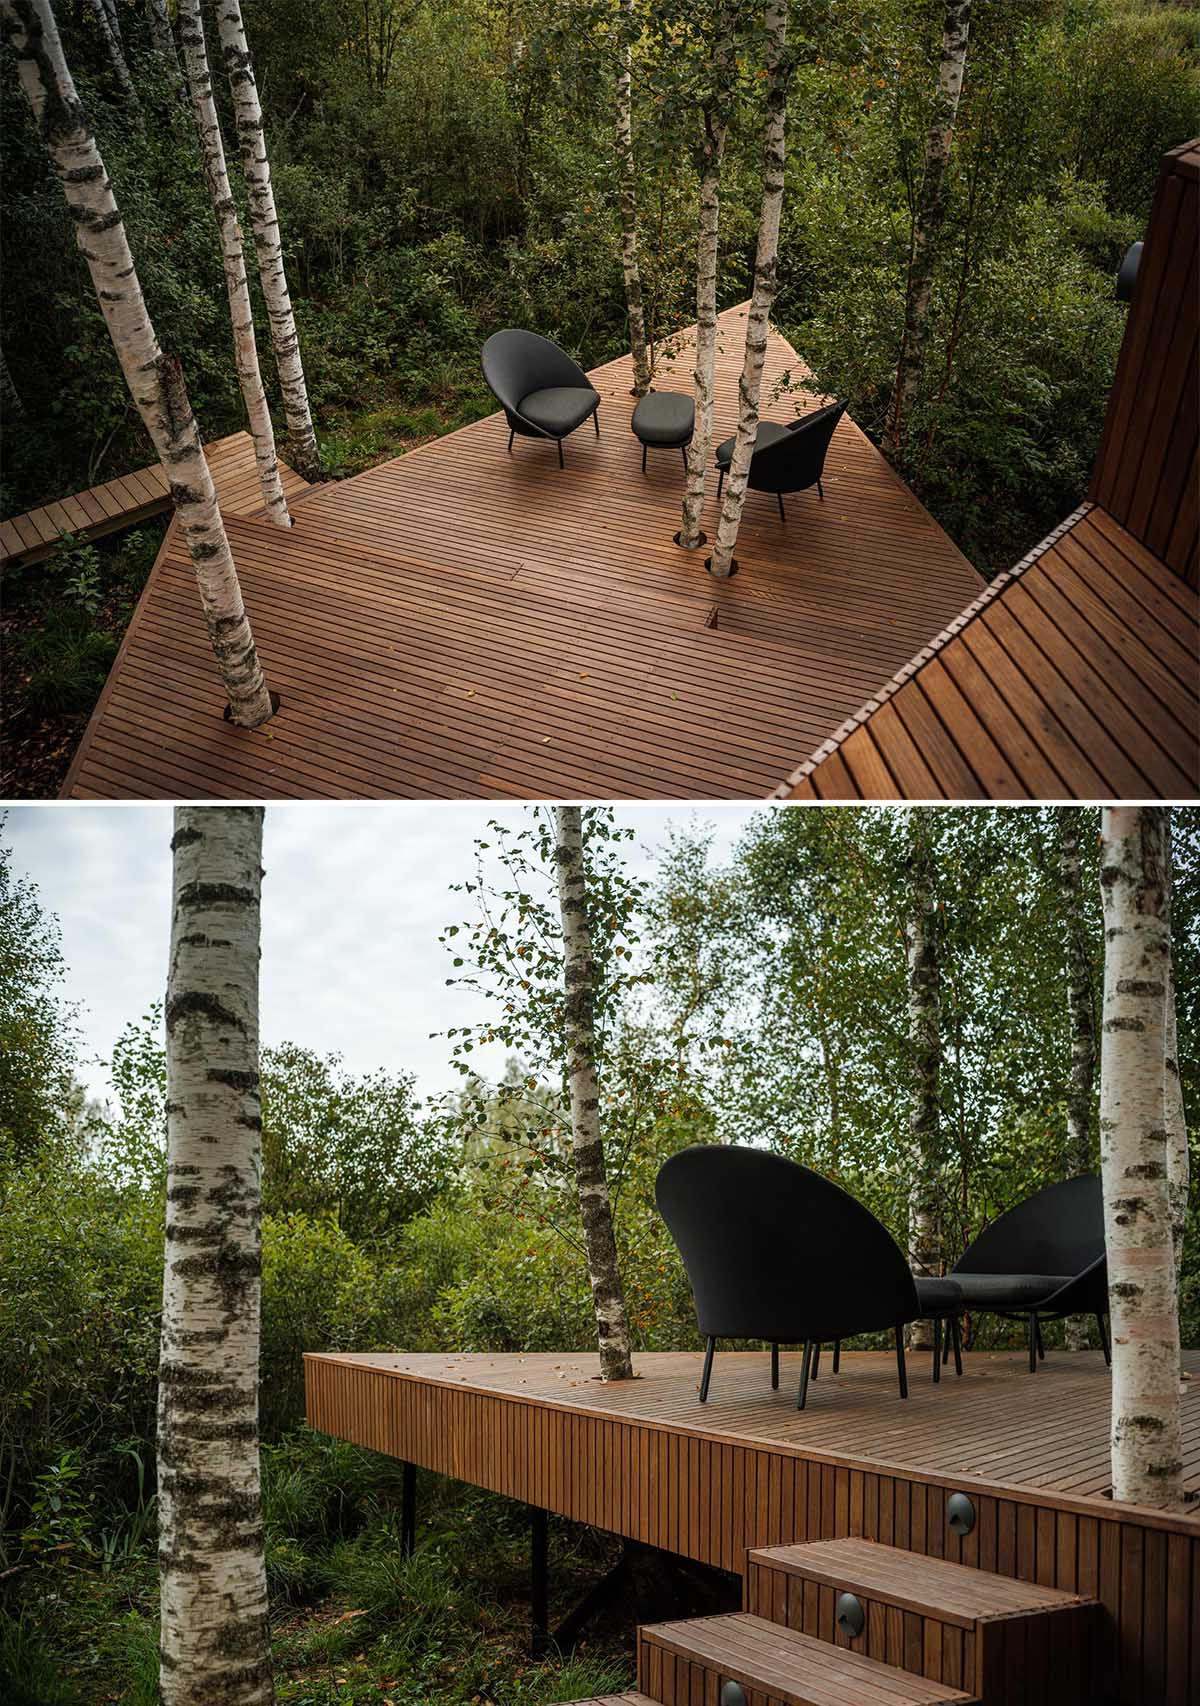 This modern wood deck, which has birch trees growing through it, expands the living space of the cabin.